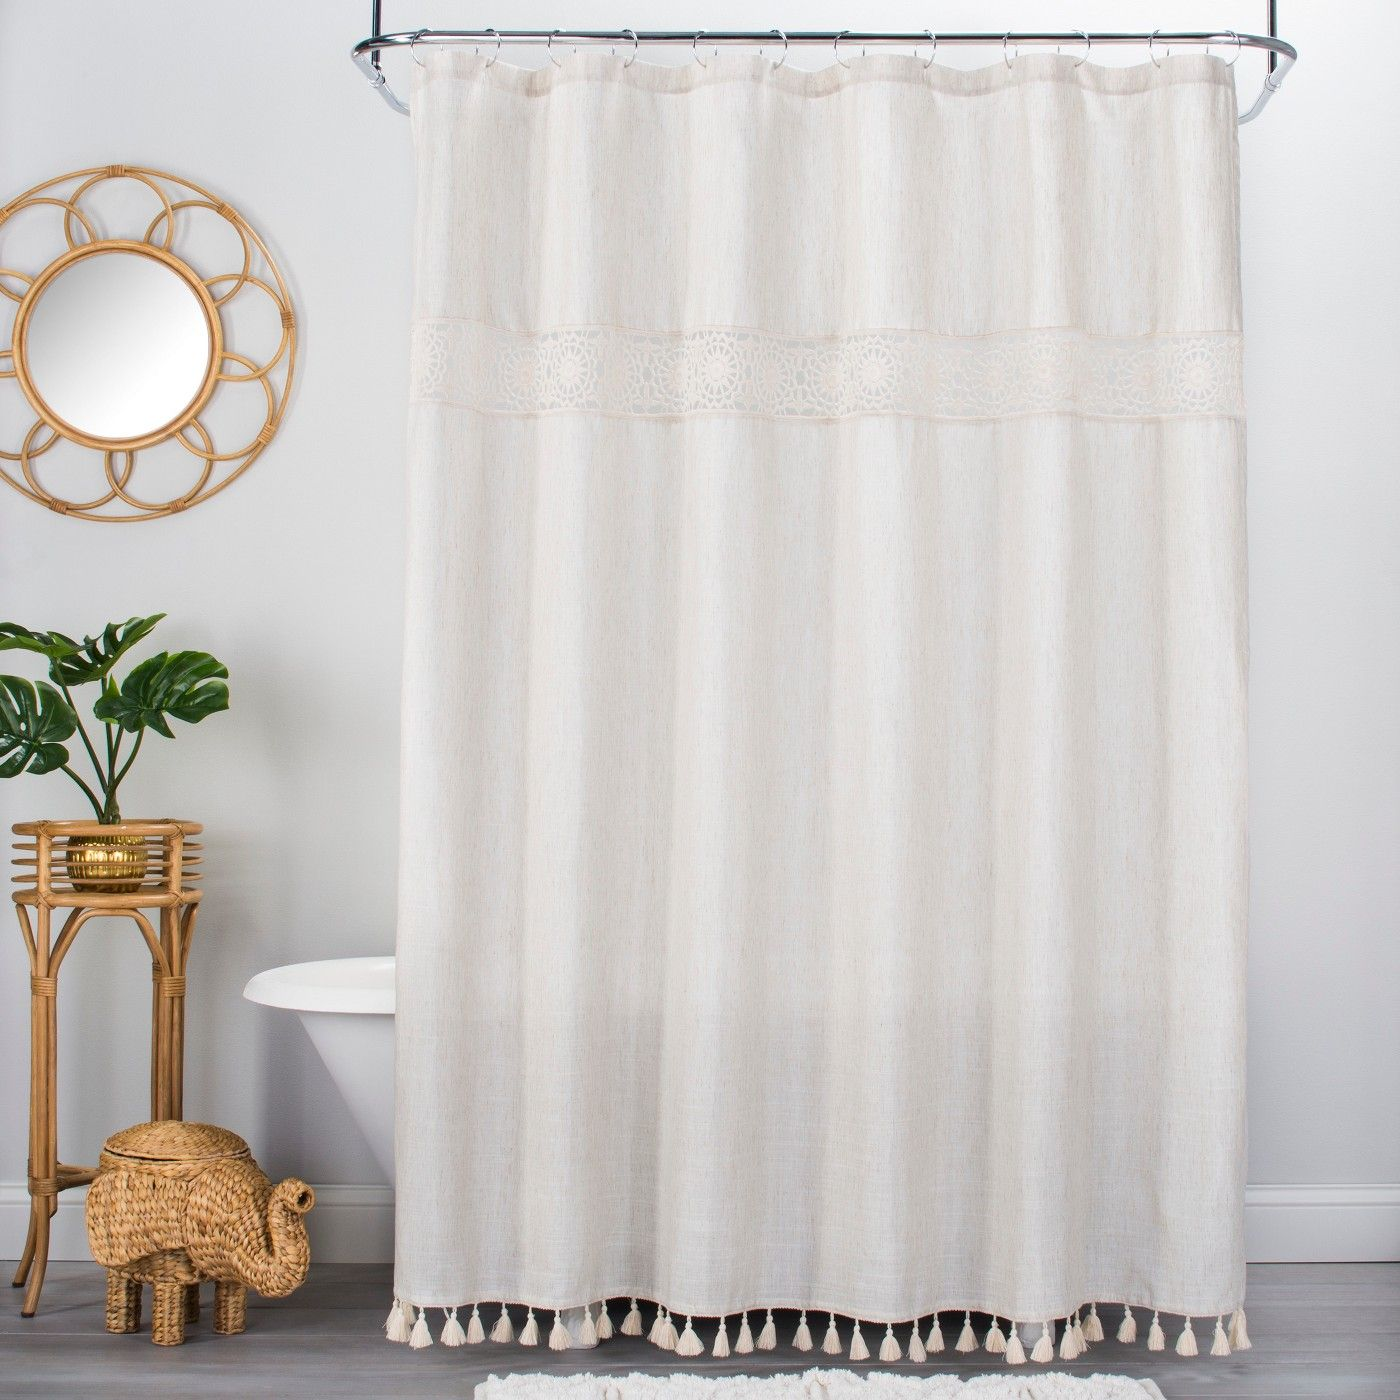 Solid Crochet With Tassels Shower Curtain Tan Opalhouse With